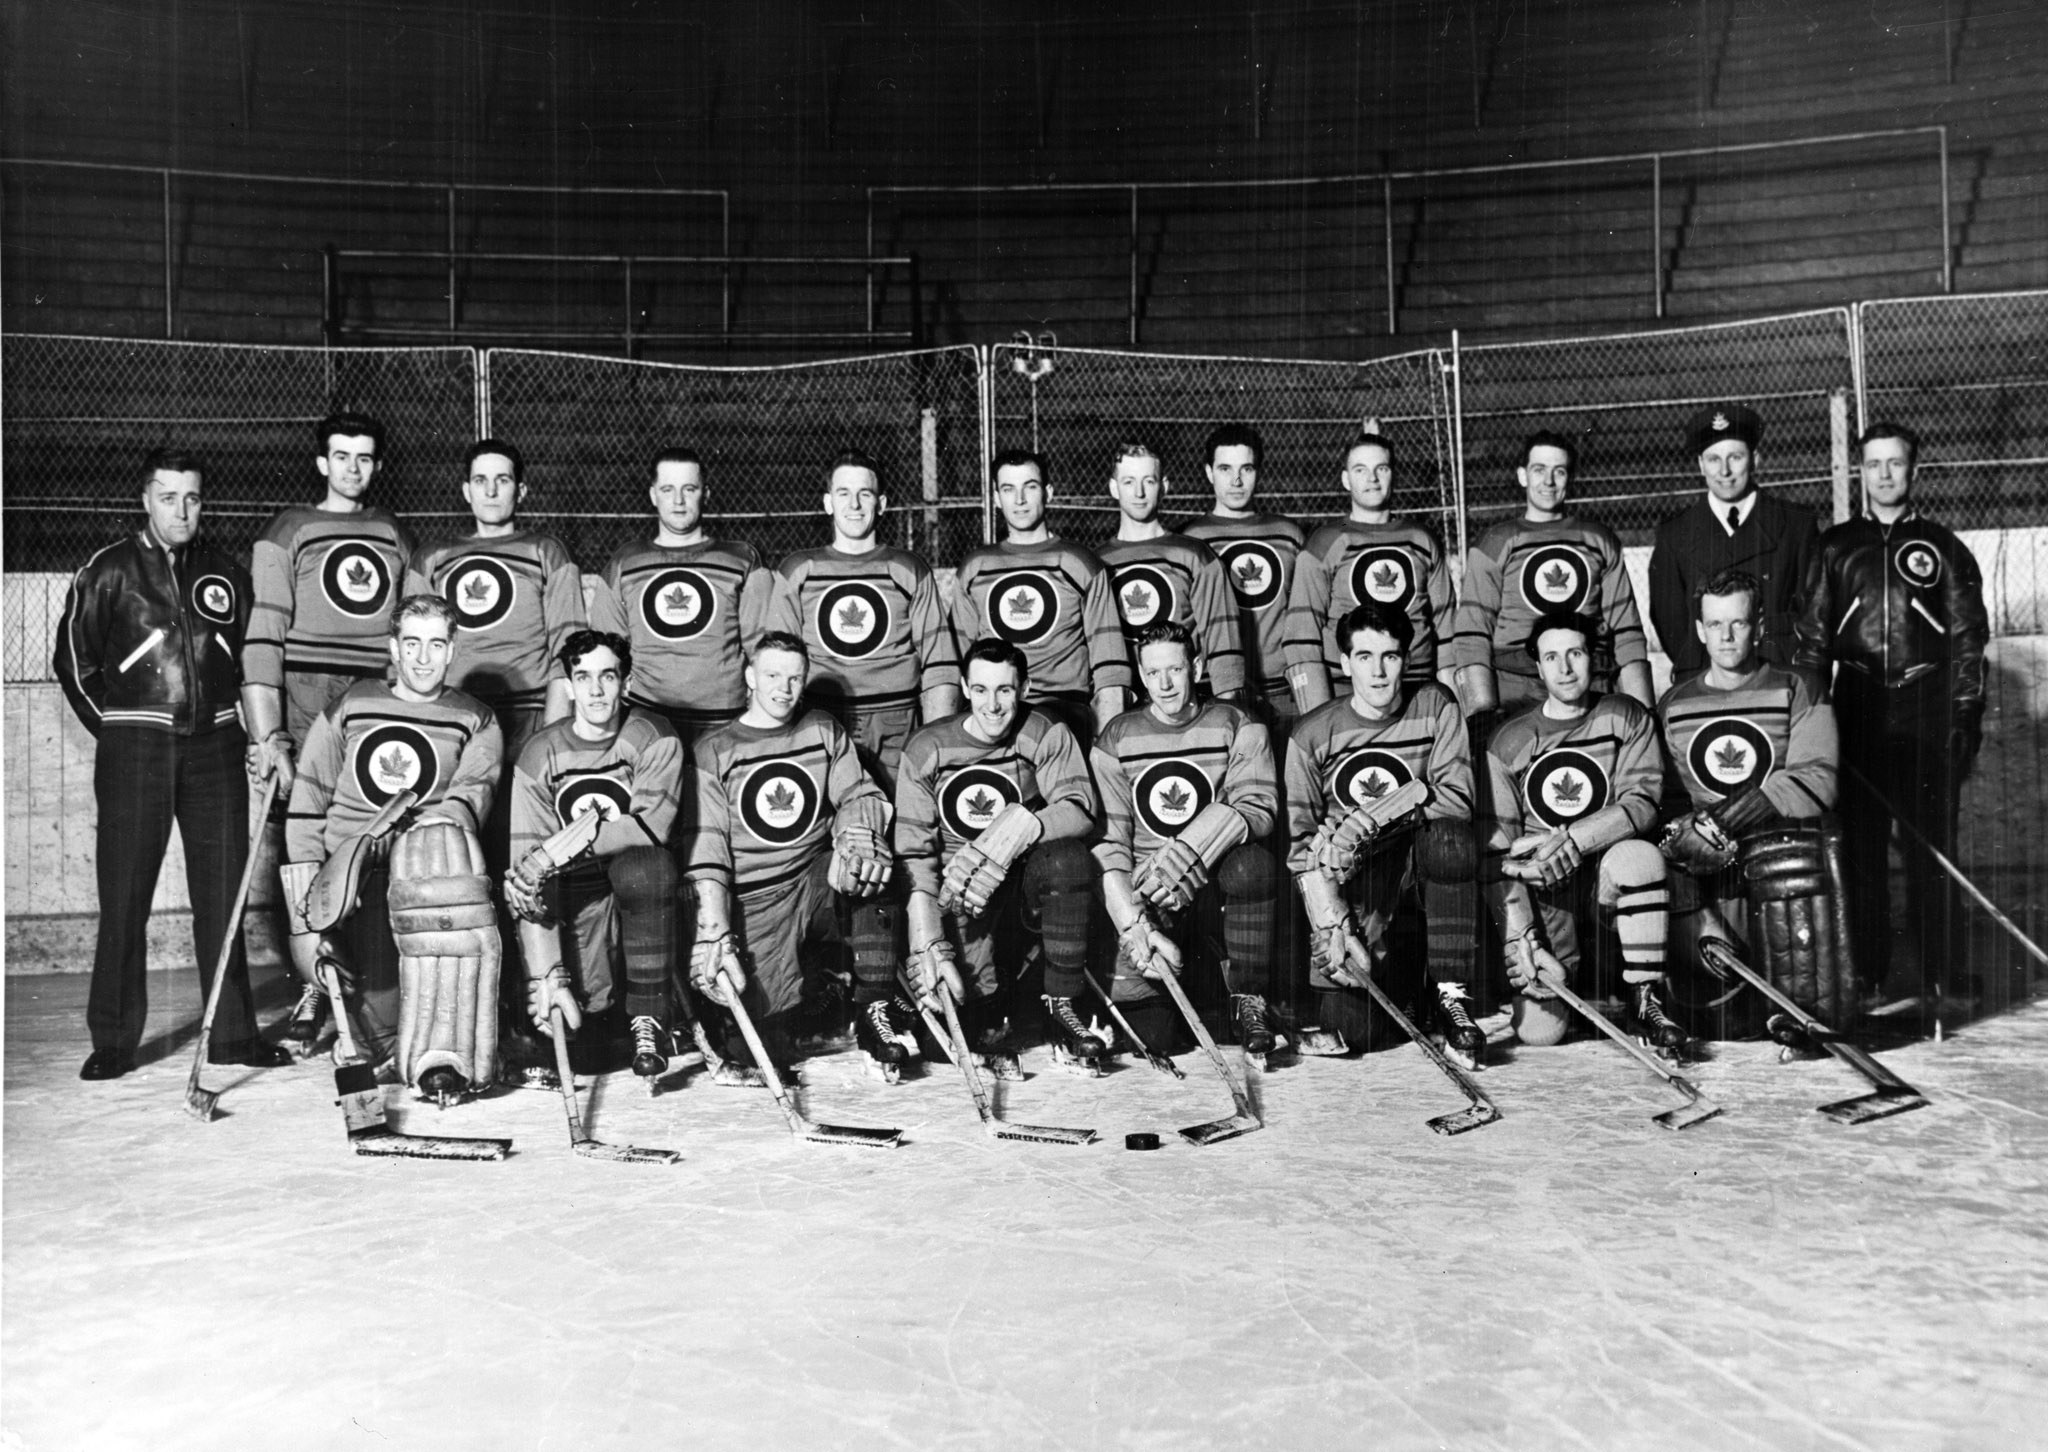 Photo: Official Oct 29 1947 TEAM PHOTO of R.C.A.F. Flyer Hockey Team Inverted